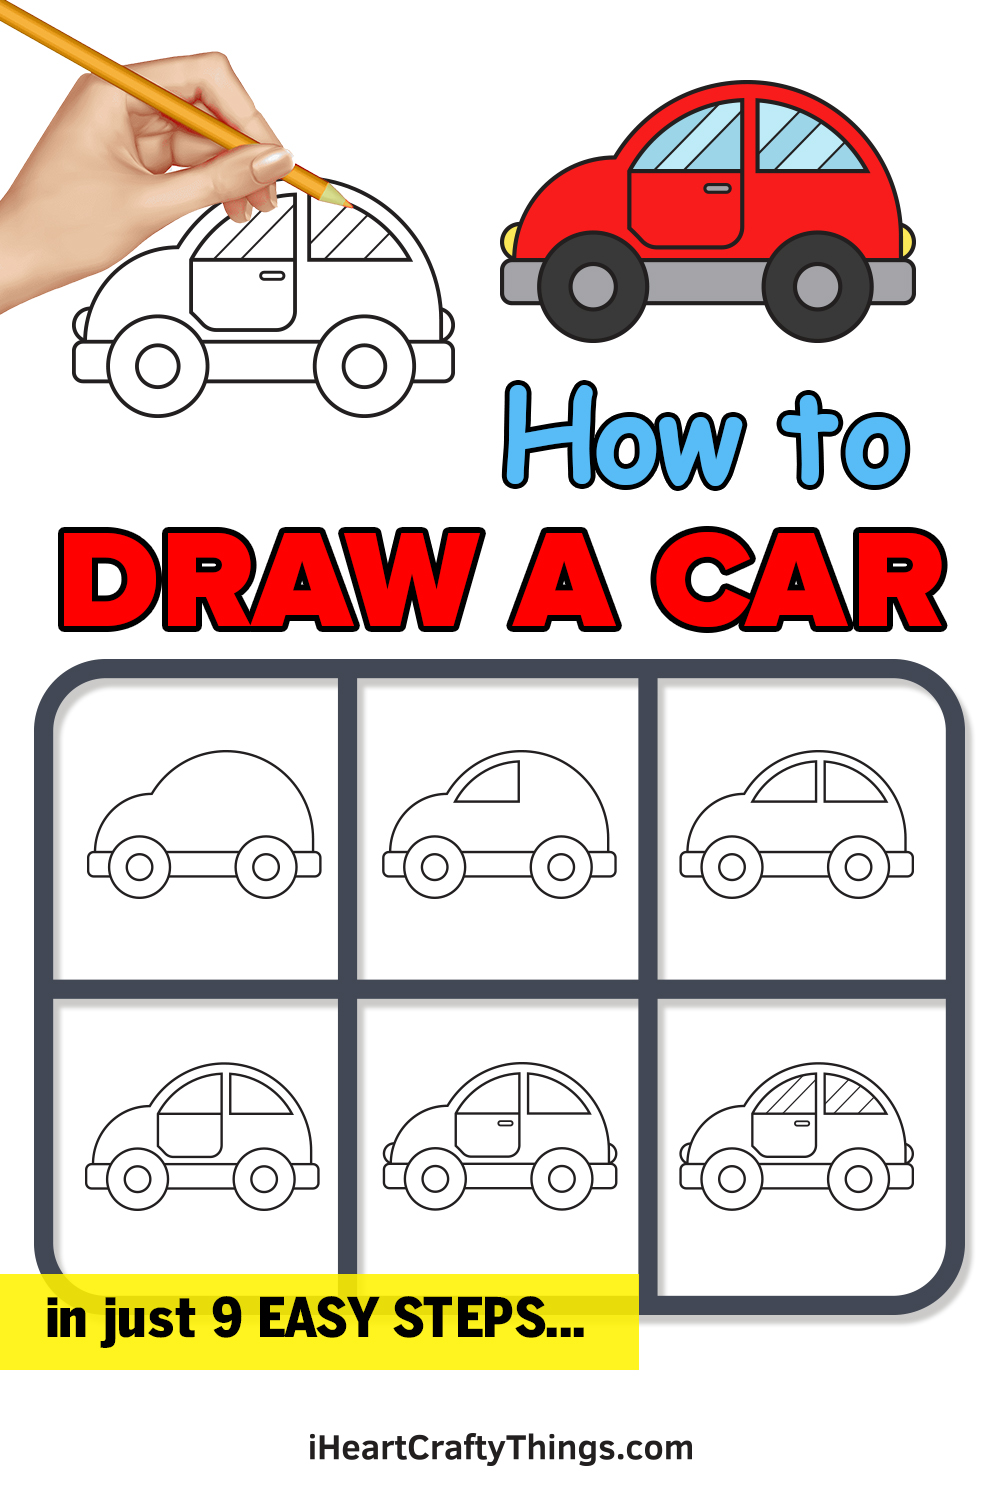 how to draw a car in 9 easy steps